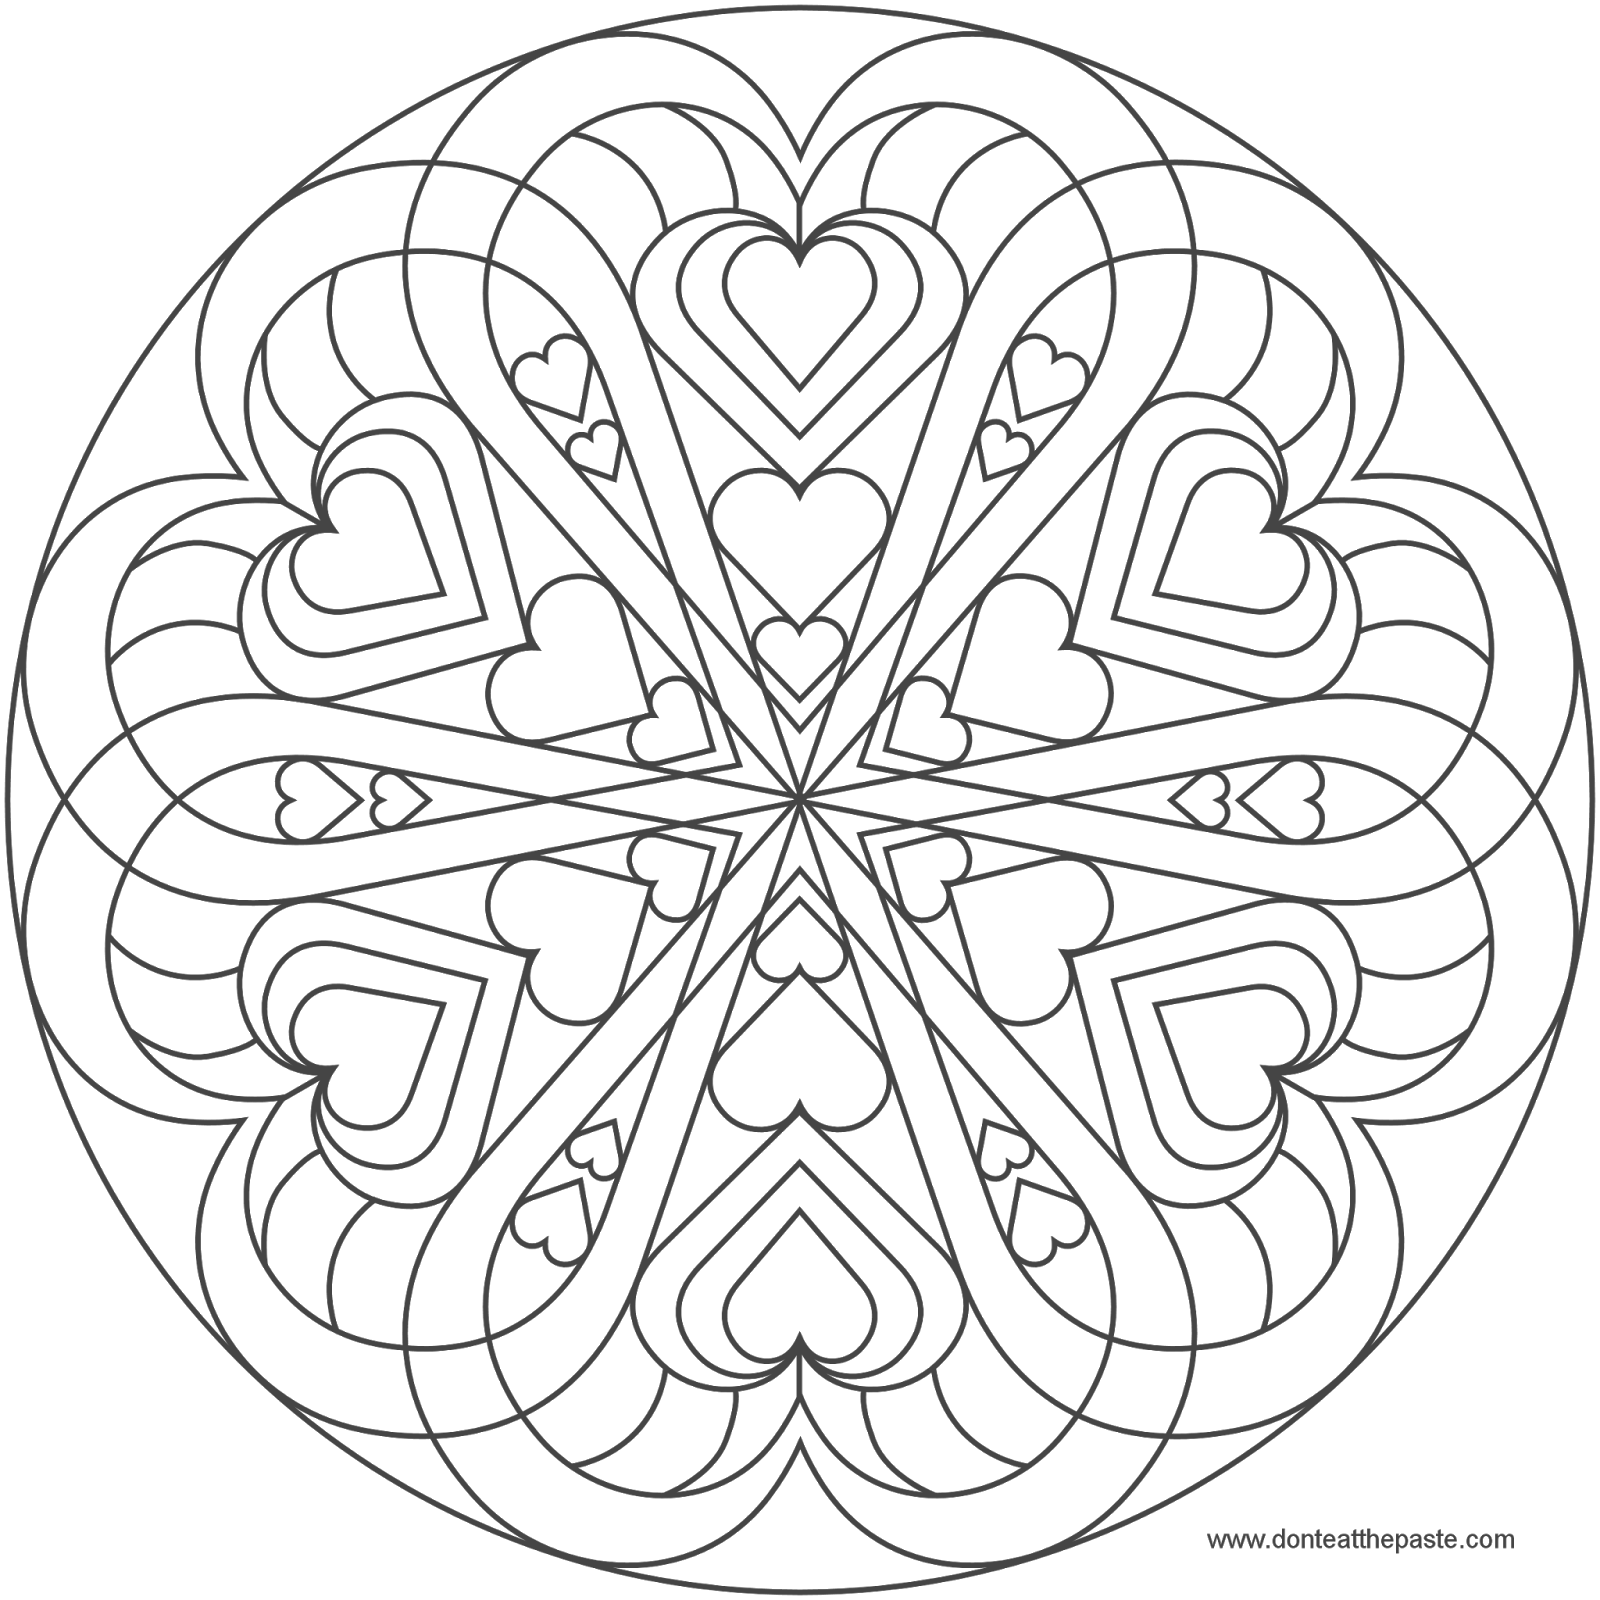 image result for mandala heart hearts mandala coloring pages valentines day coloring page. Black Bedroom Furniture Sets. Home Design Ideas